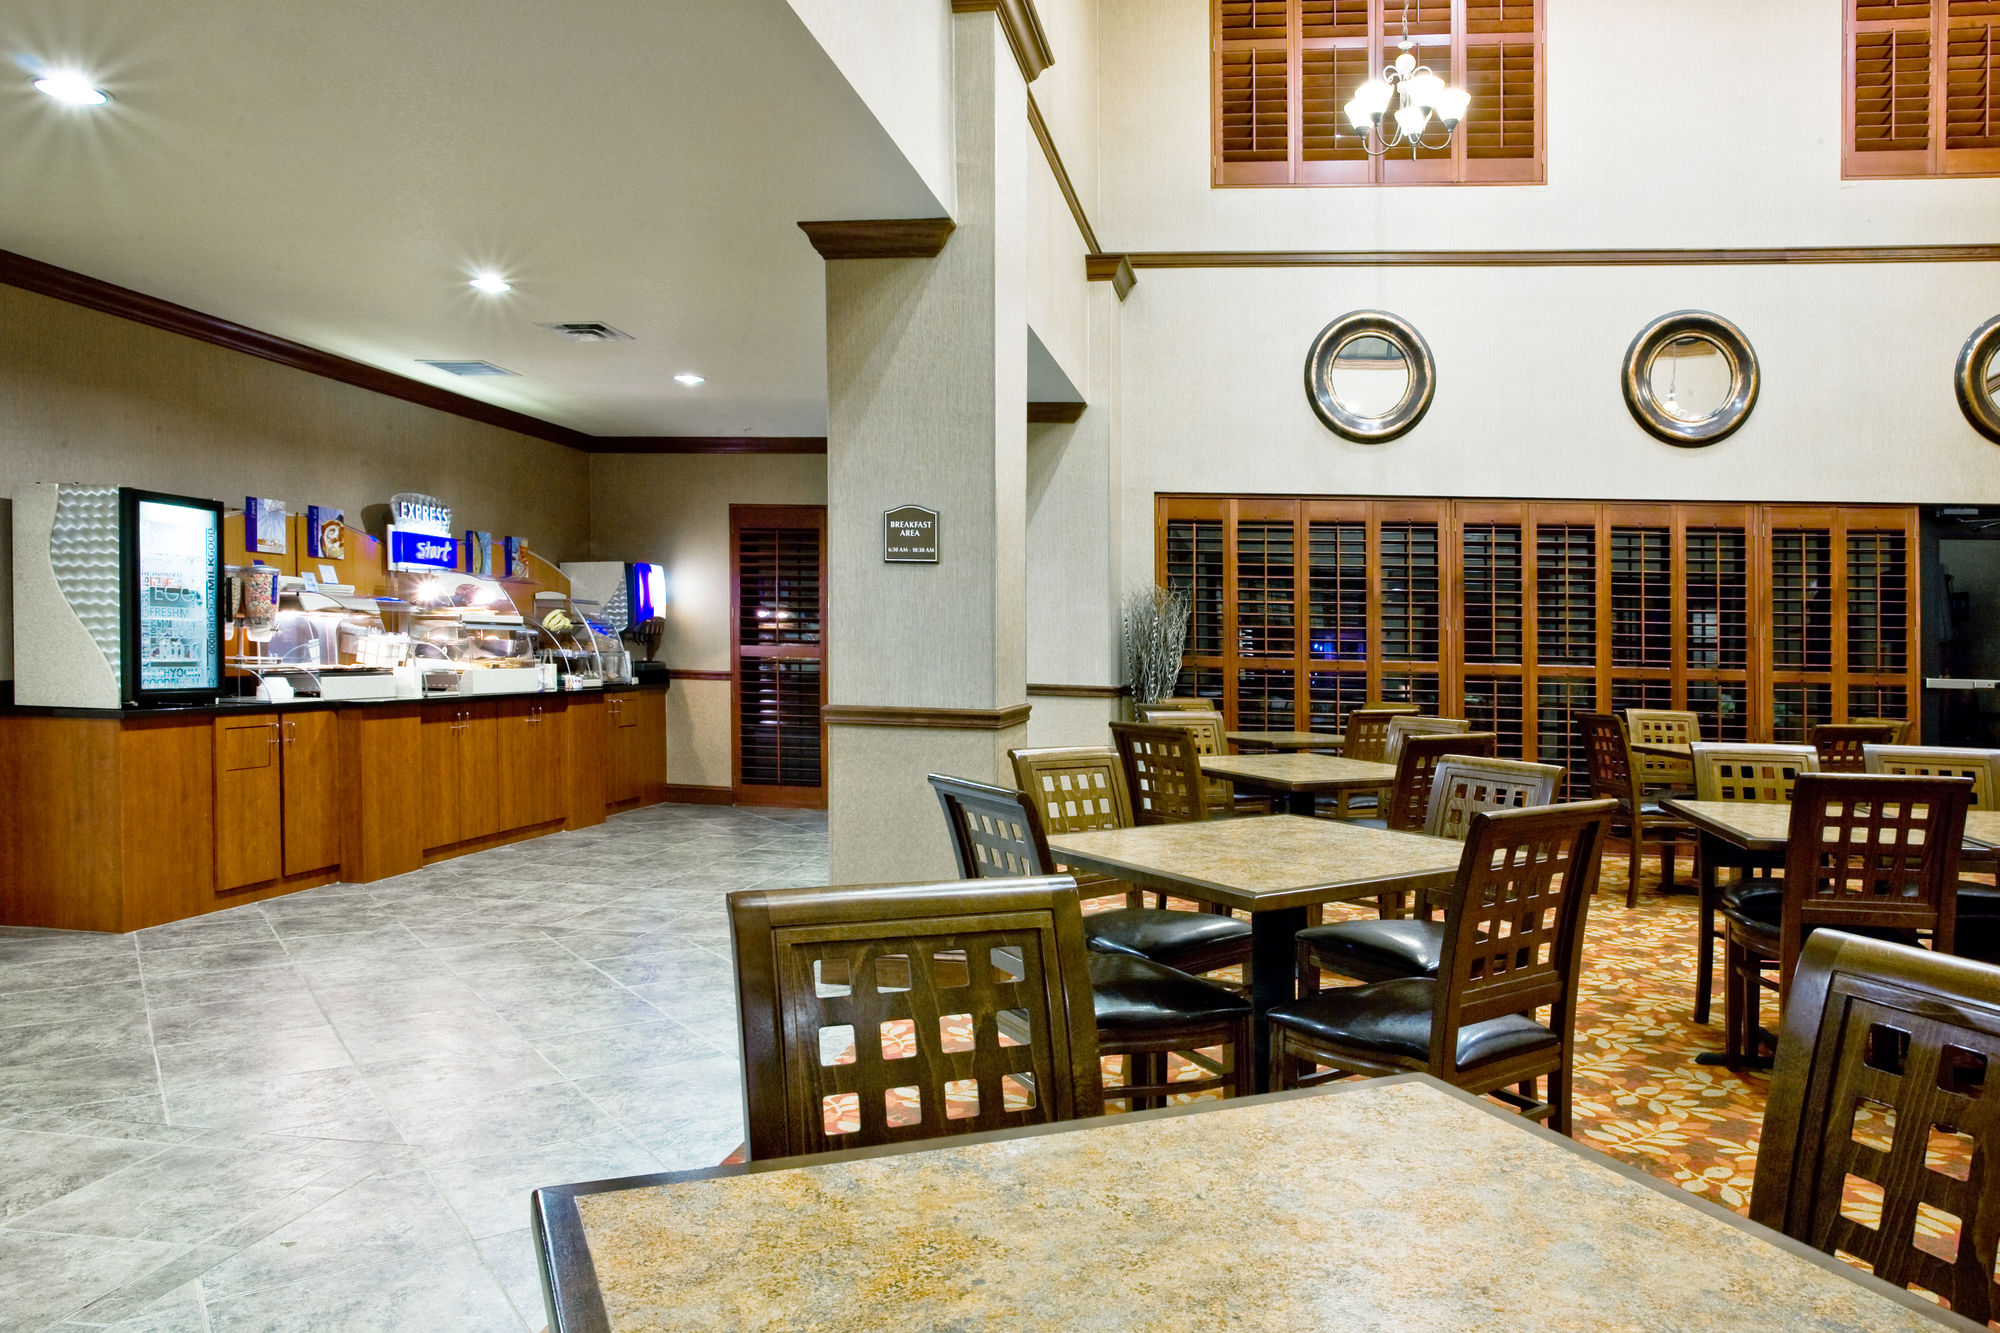 Holiday Inn Express Hotel & Suites Lake Placid in Lake Placid, FL